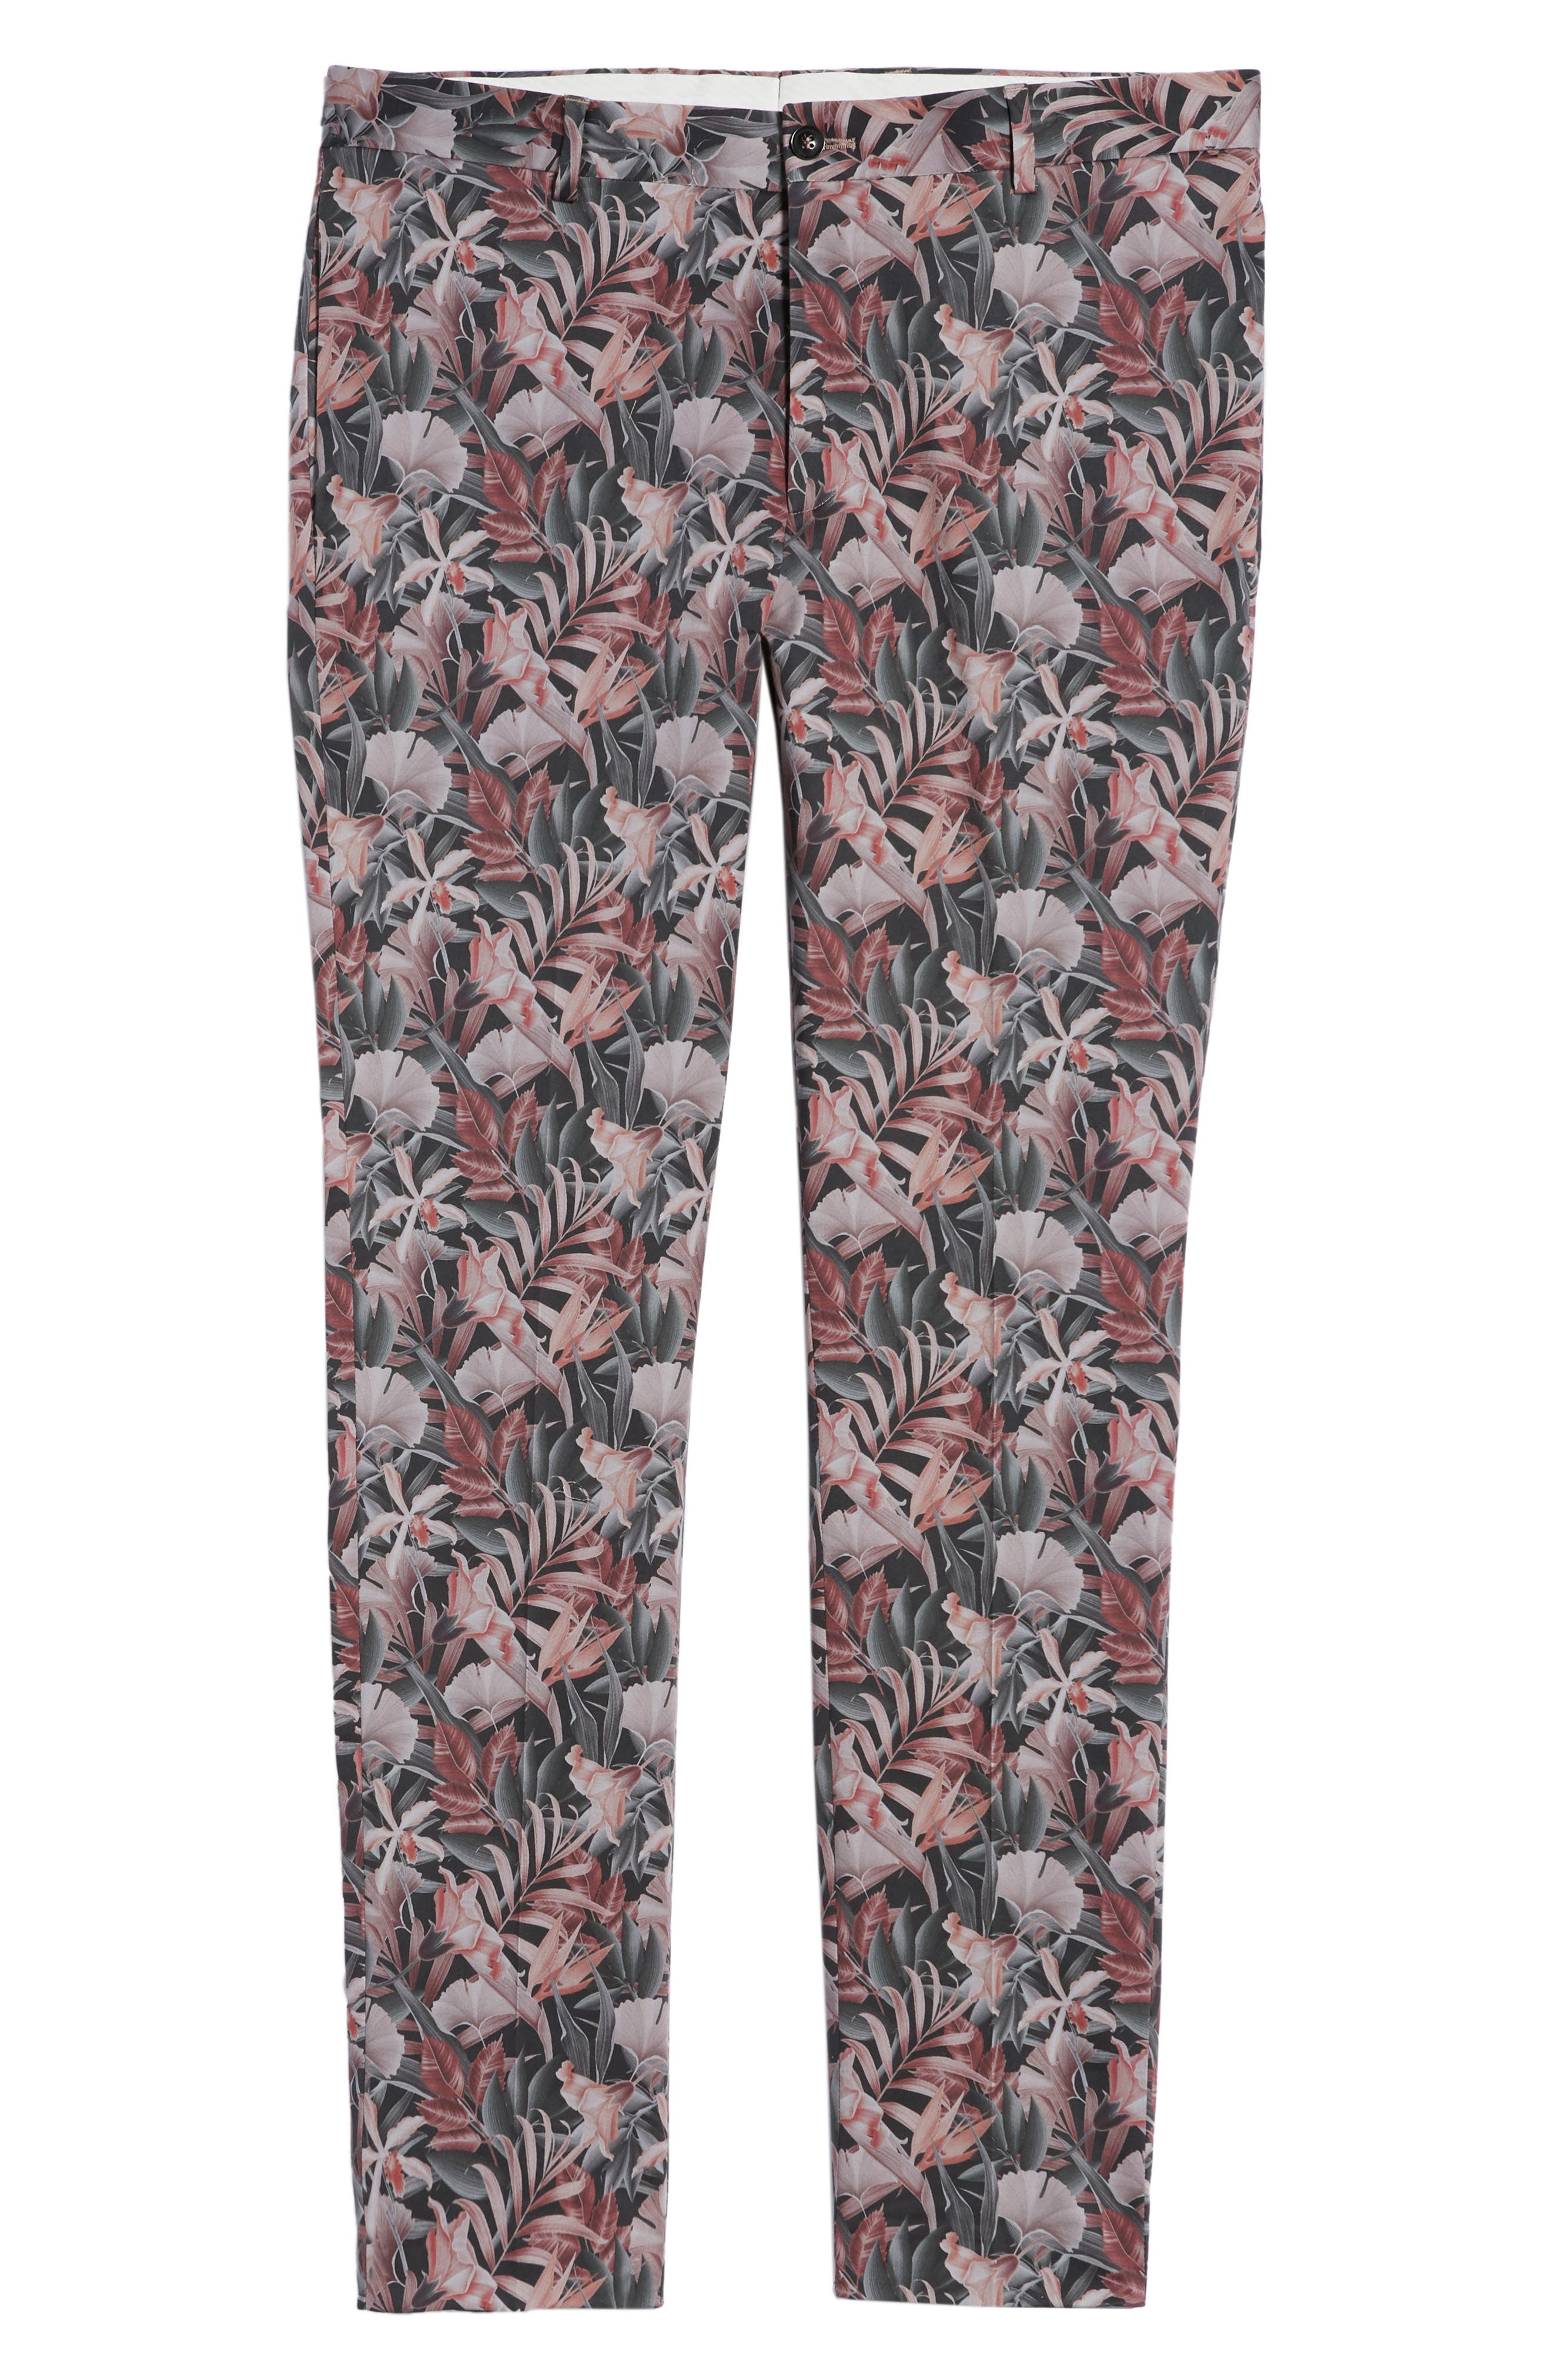 Ultra Skinny Fit Hibiscus Print Suit Trousers,                             Alternate thumbnail 6, color,                             Pink Multi